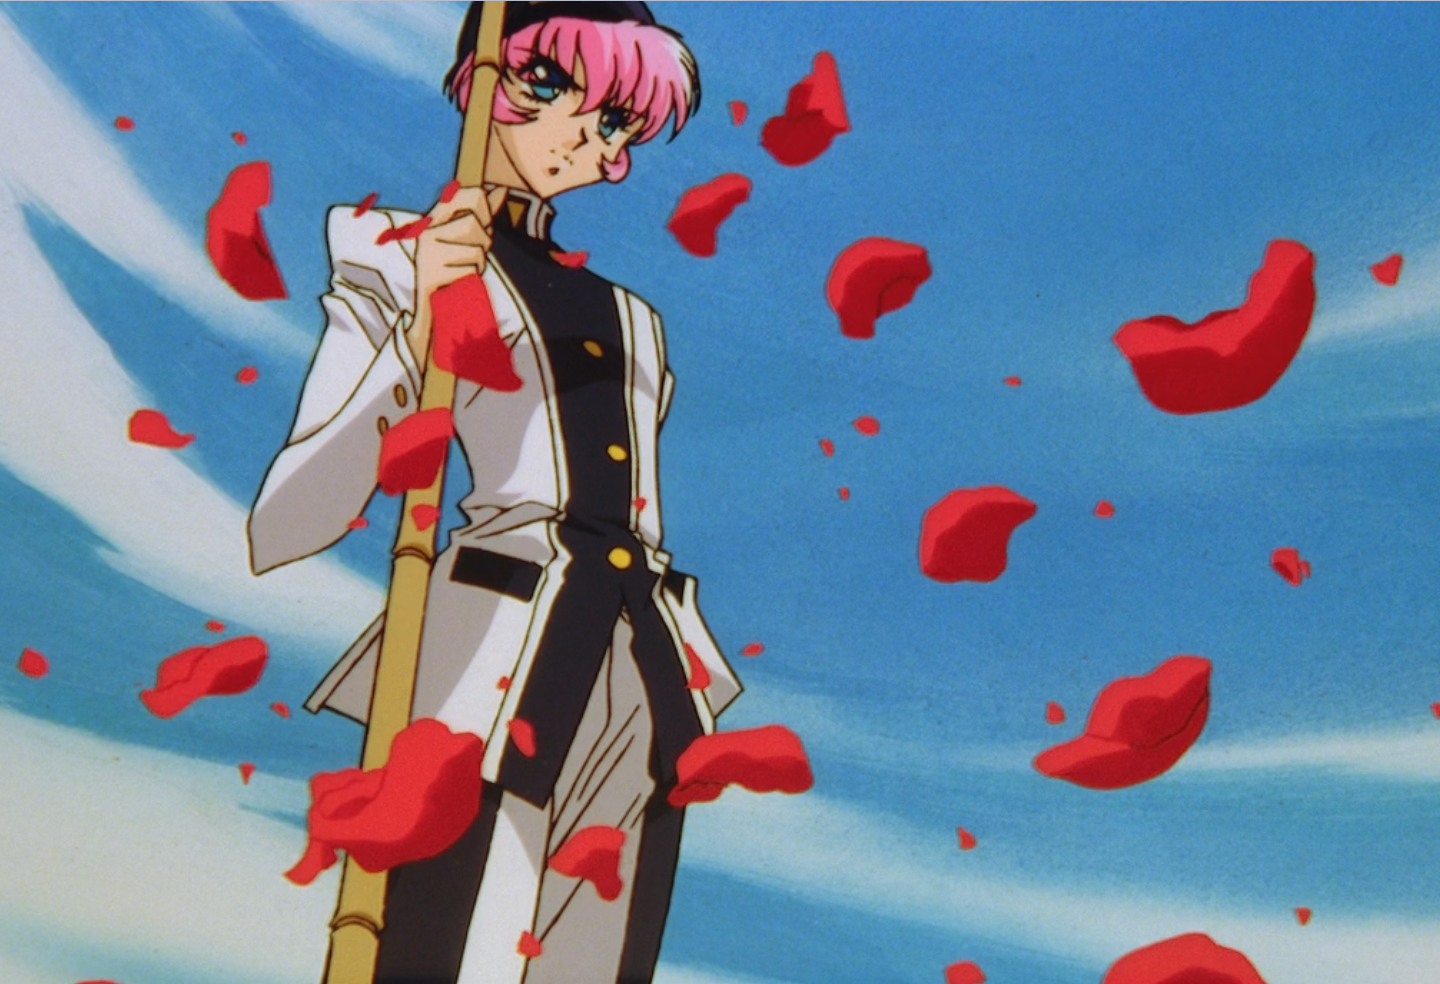 [Throwback] Revolutionary Girl Utena